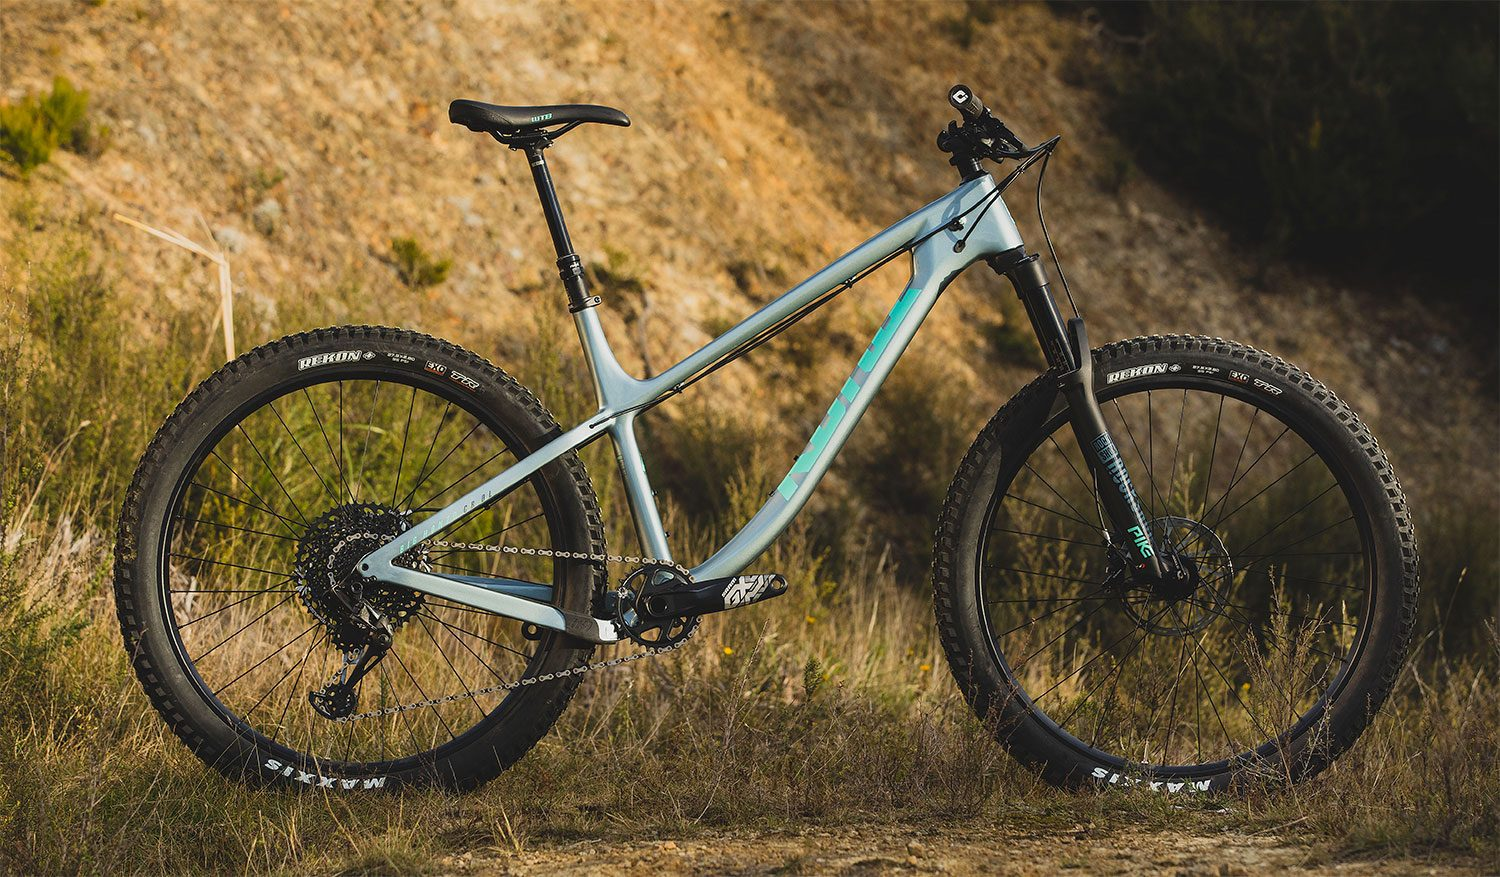 the newest iteration of the kona big honzo